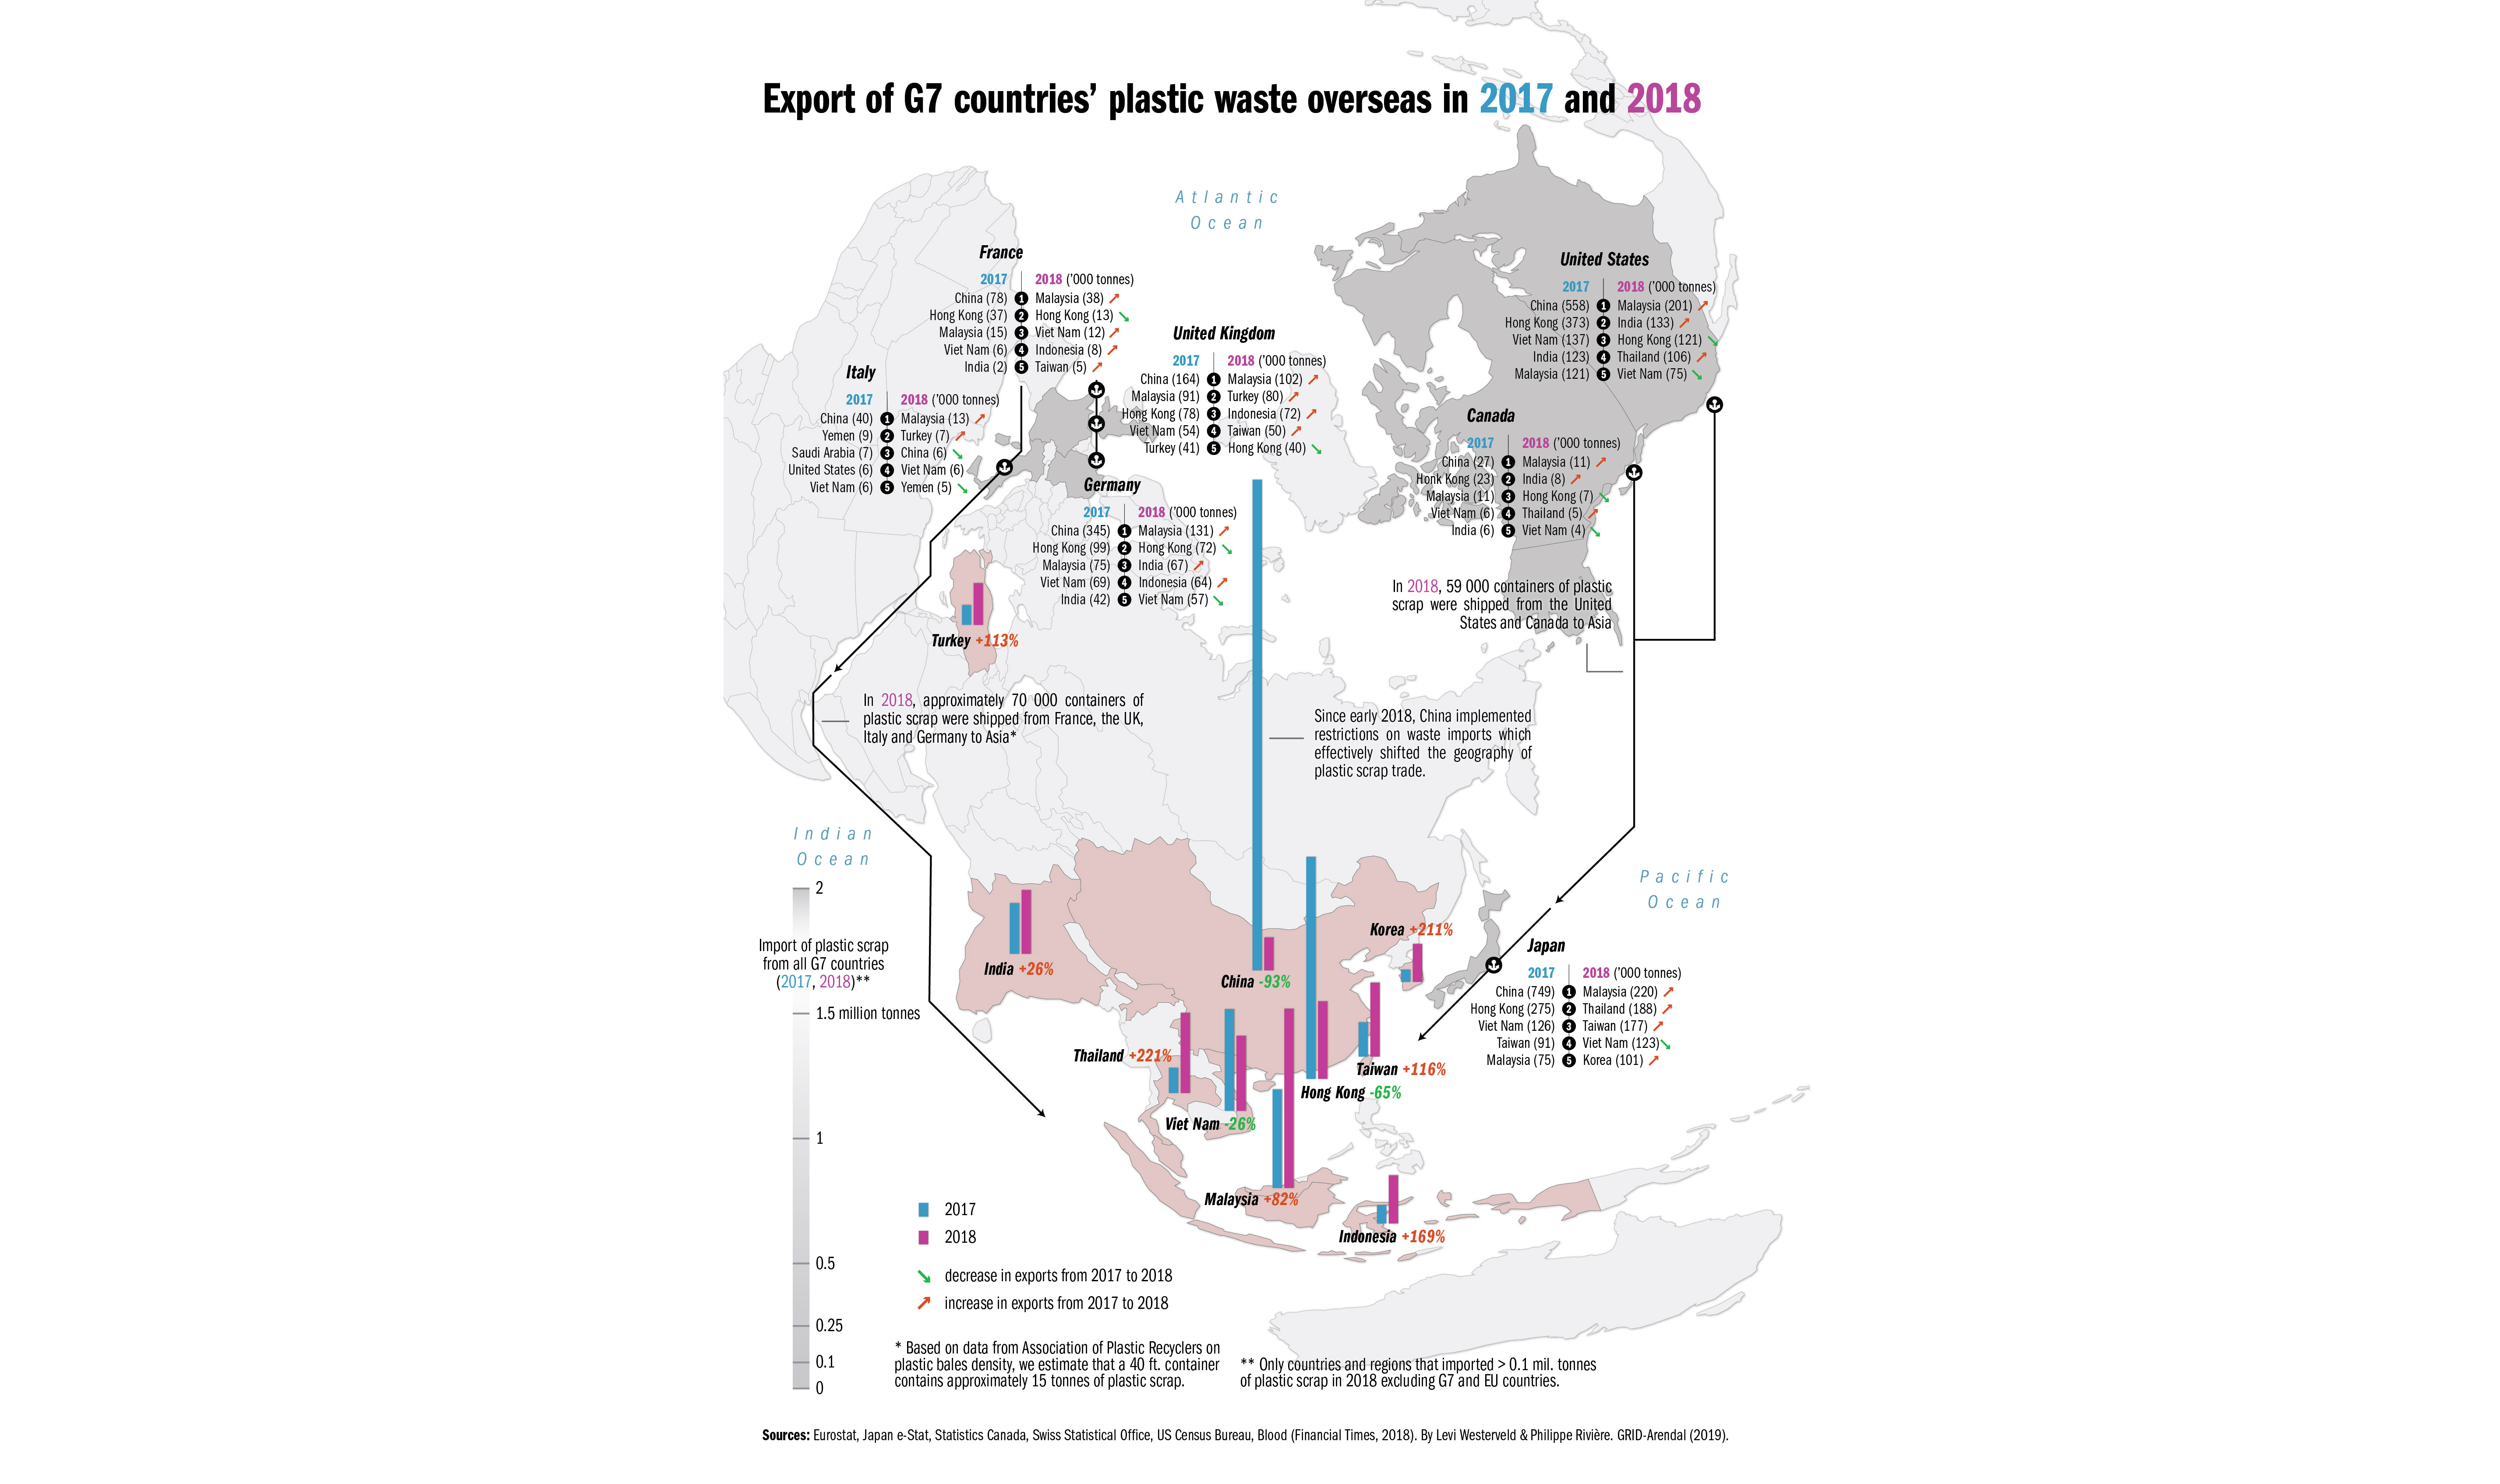 Export of G7 countries' plastic waste overseas in 2017 and